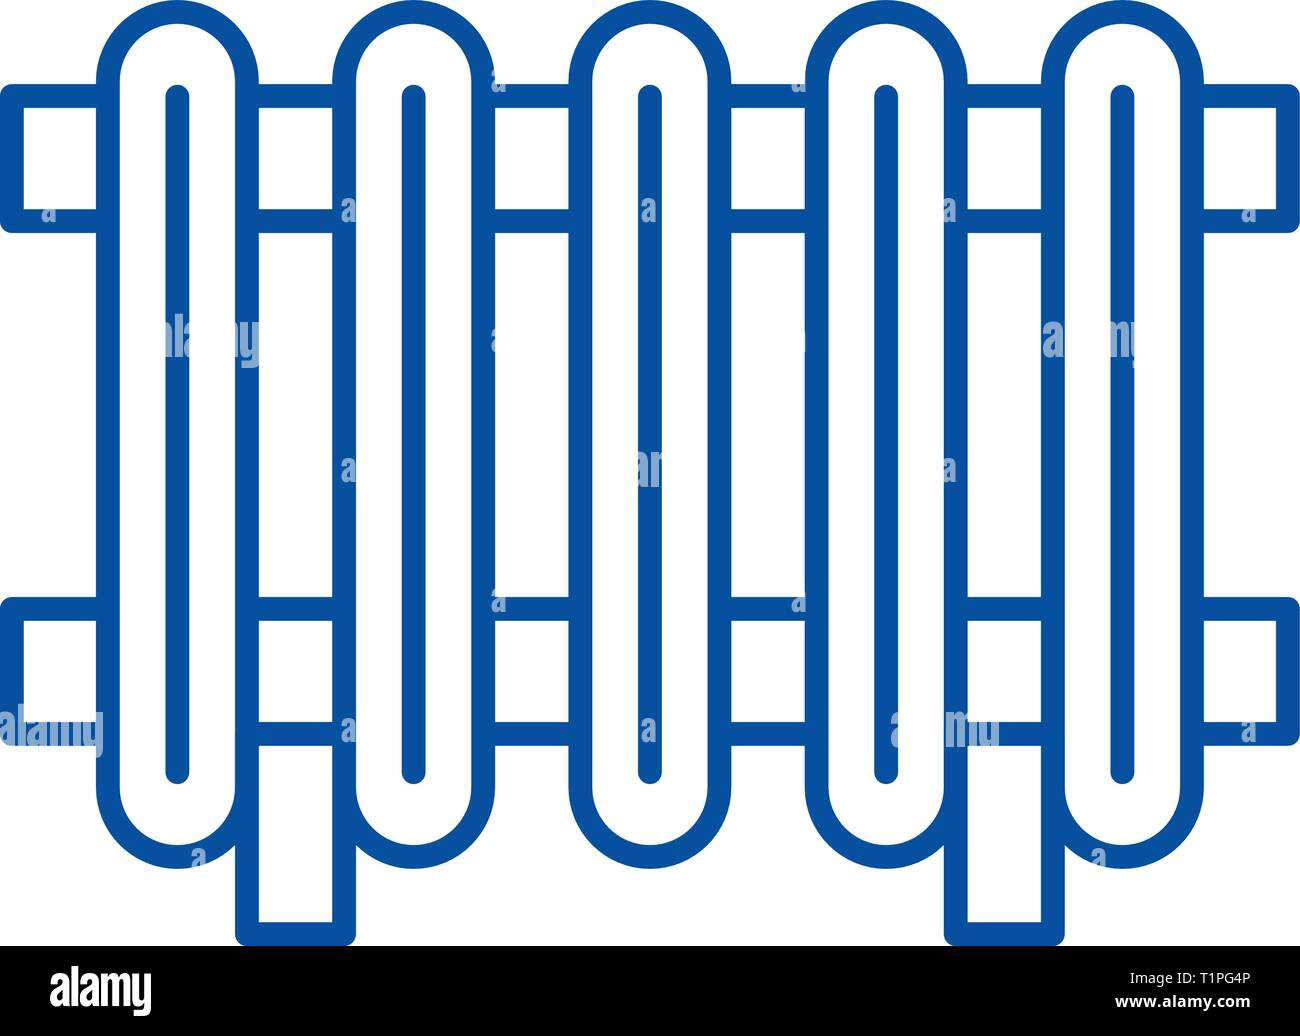 Radiator line icon concept. Radiator flat  vector symbol, sign, outline illustration. - Stock Vector